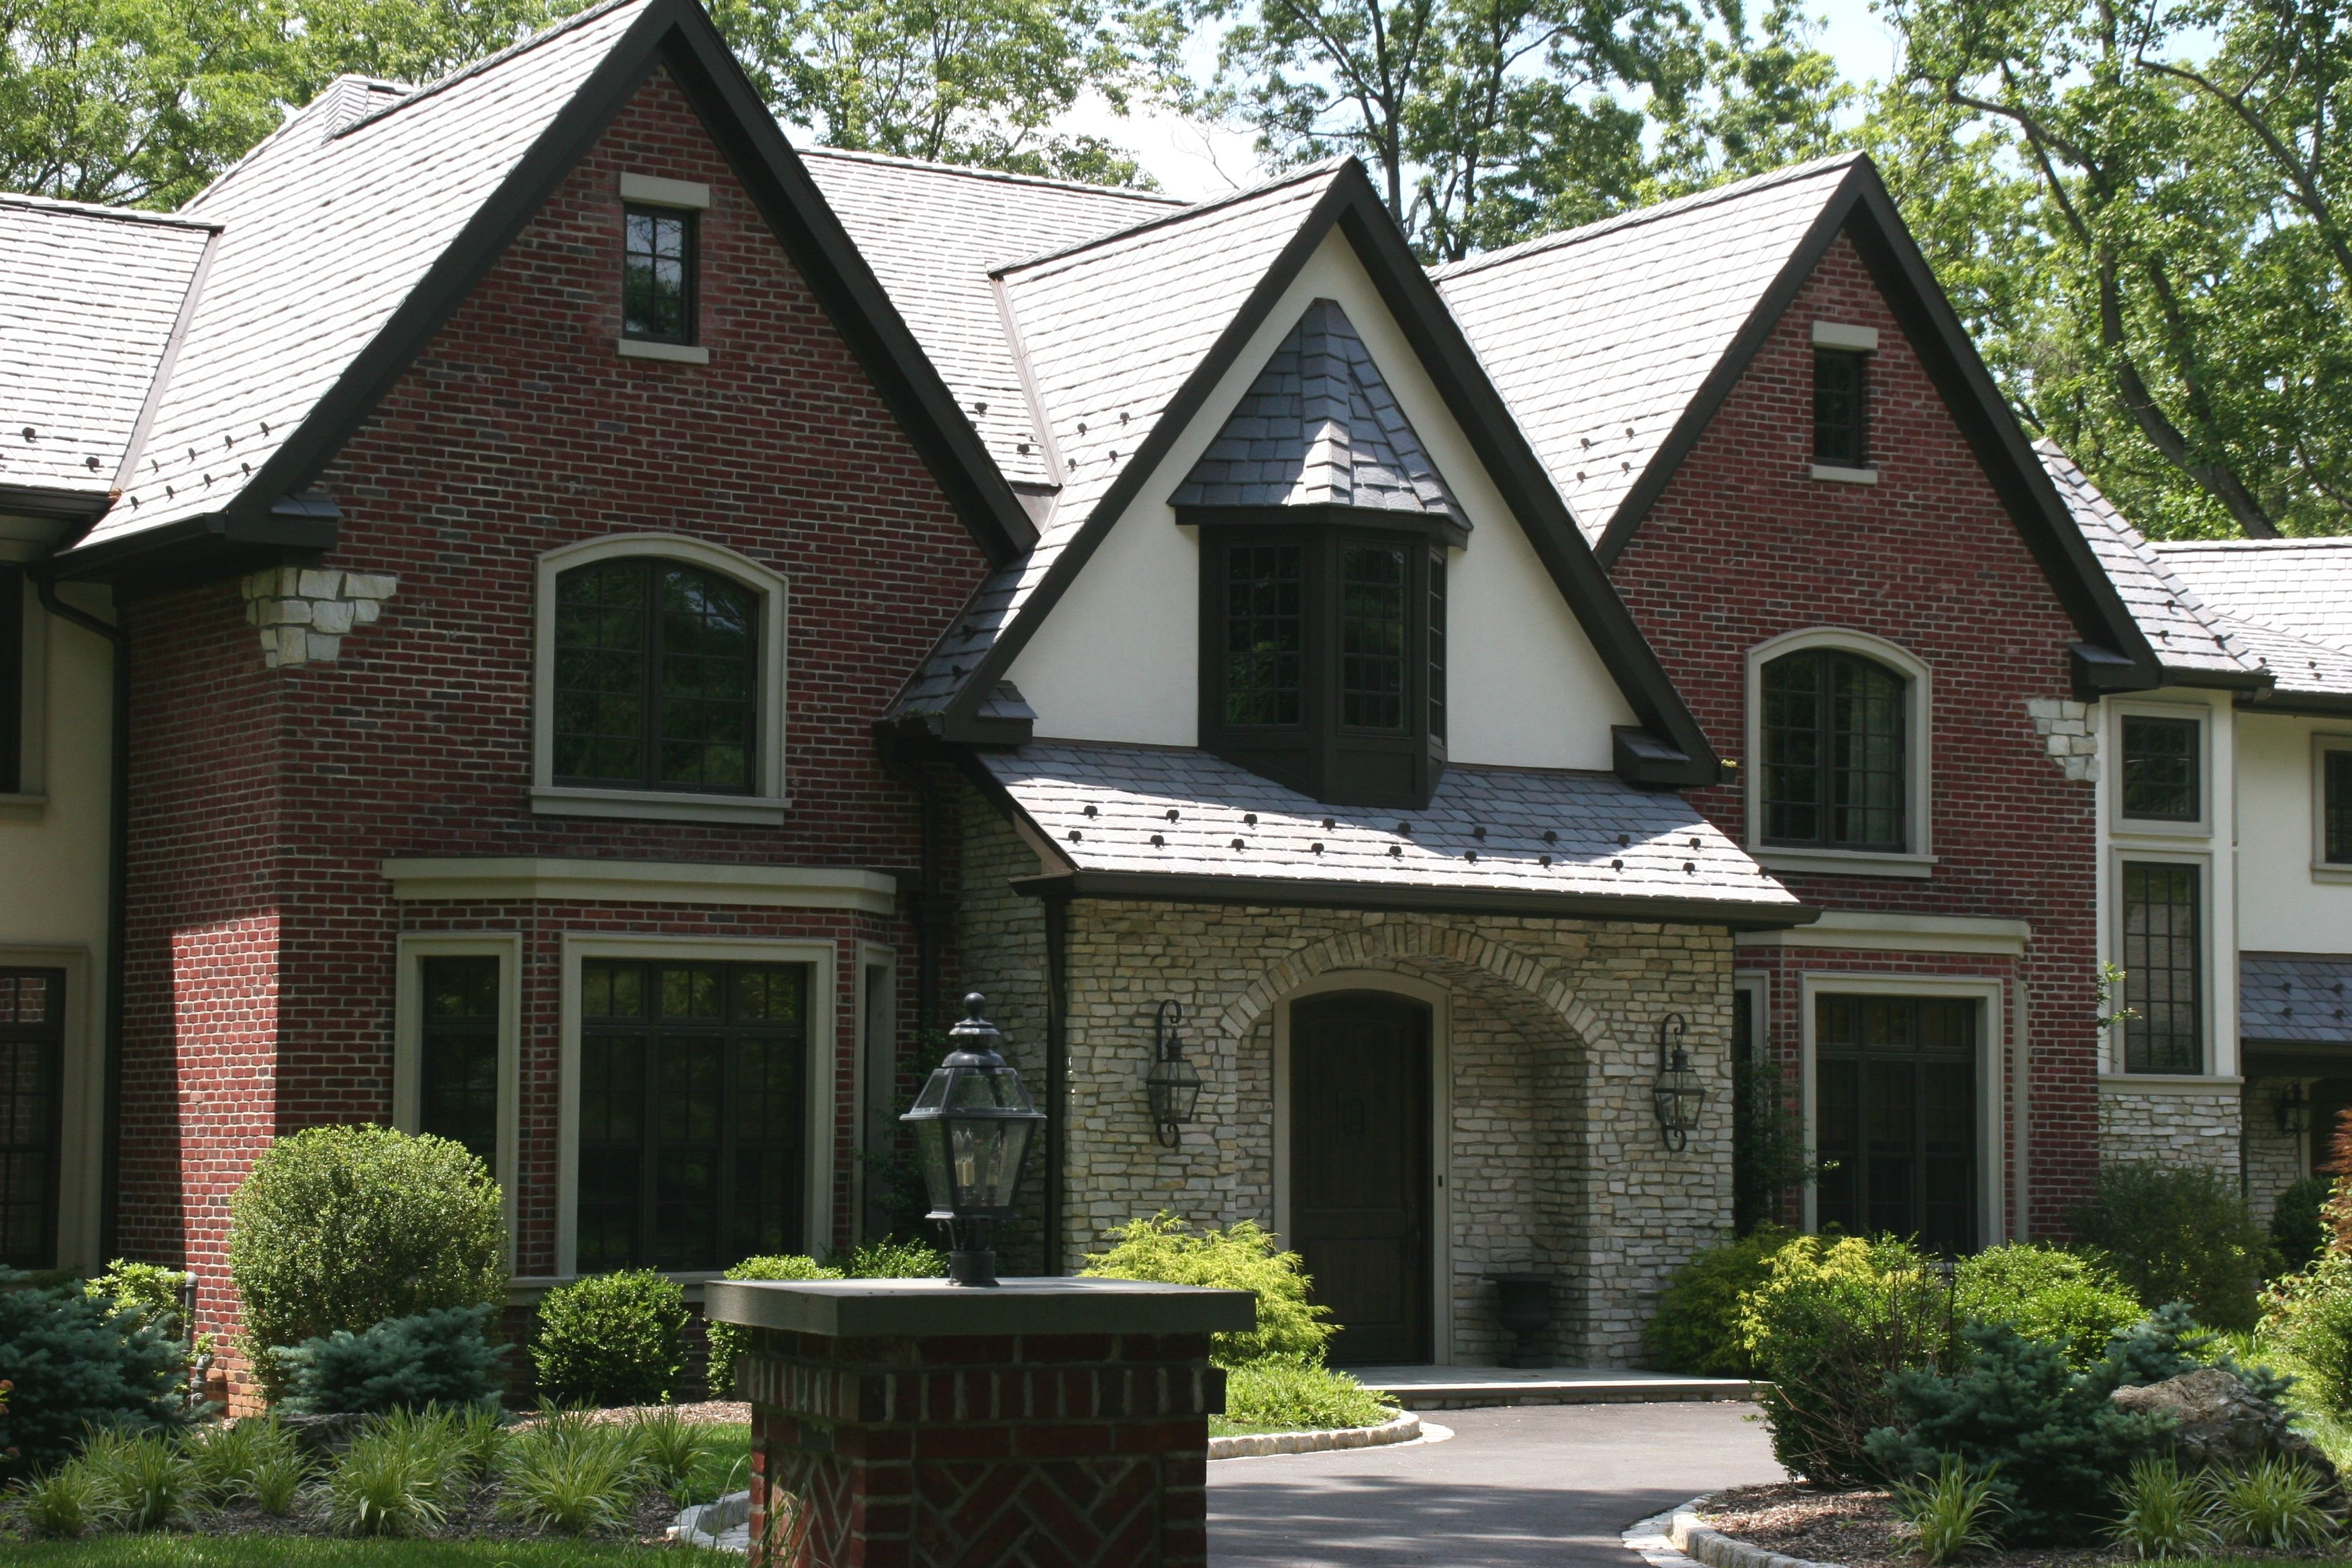 Brick And Stone Exterior Combinations Brick With Stucco And Stone Combinations Exterior